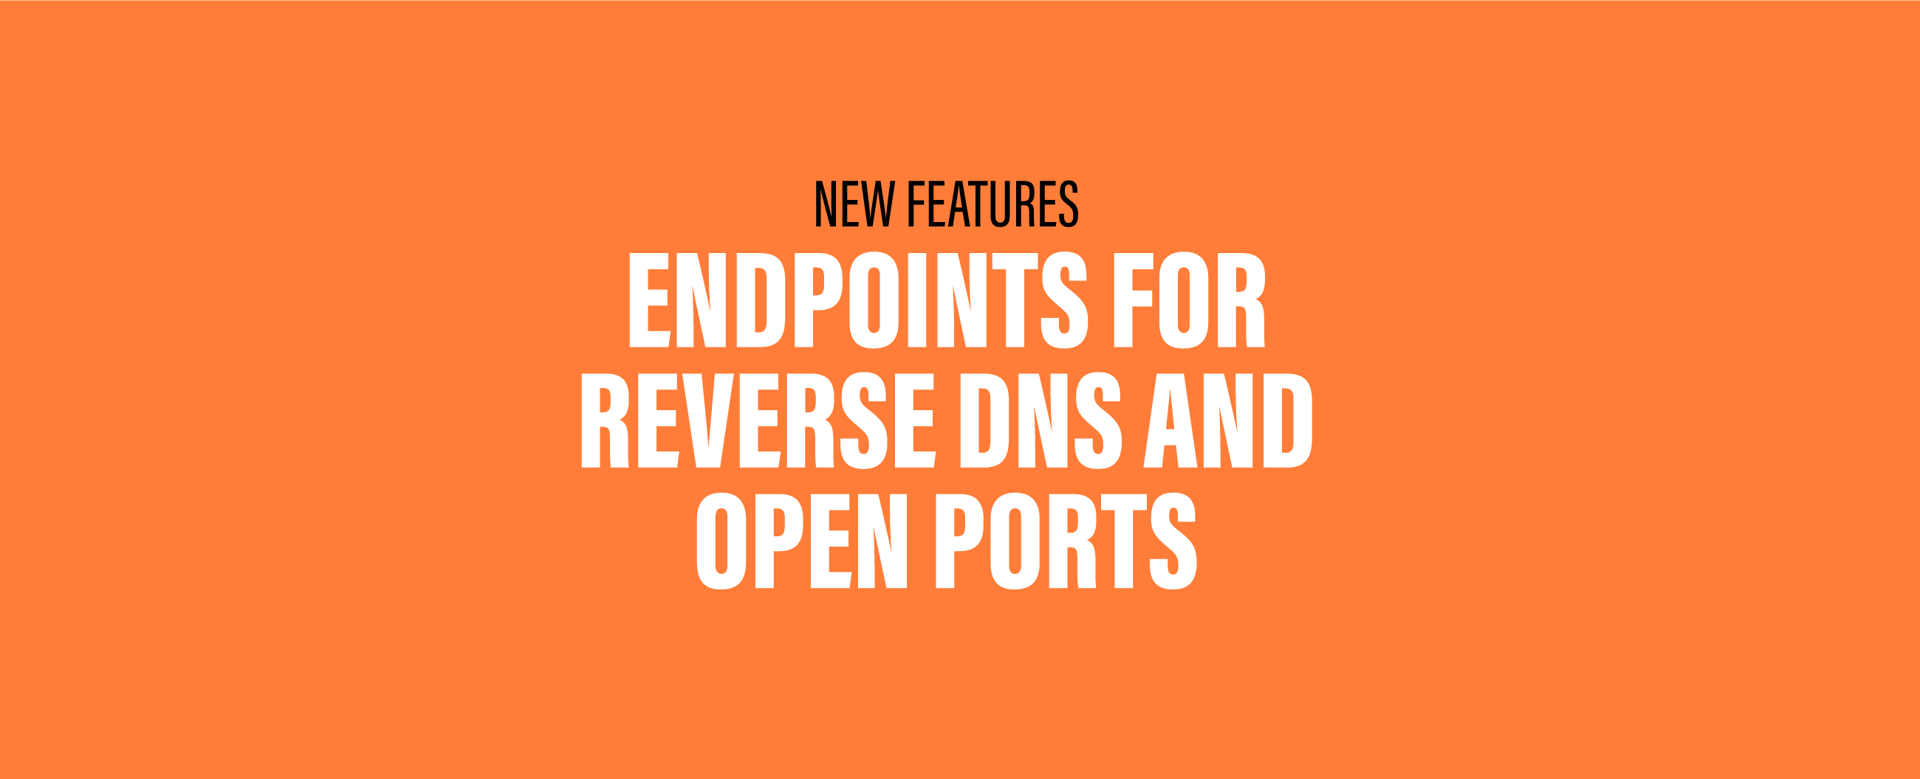 New Features: Endpoints for Reverse DNS and Open Ports